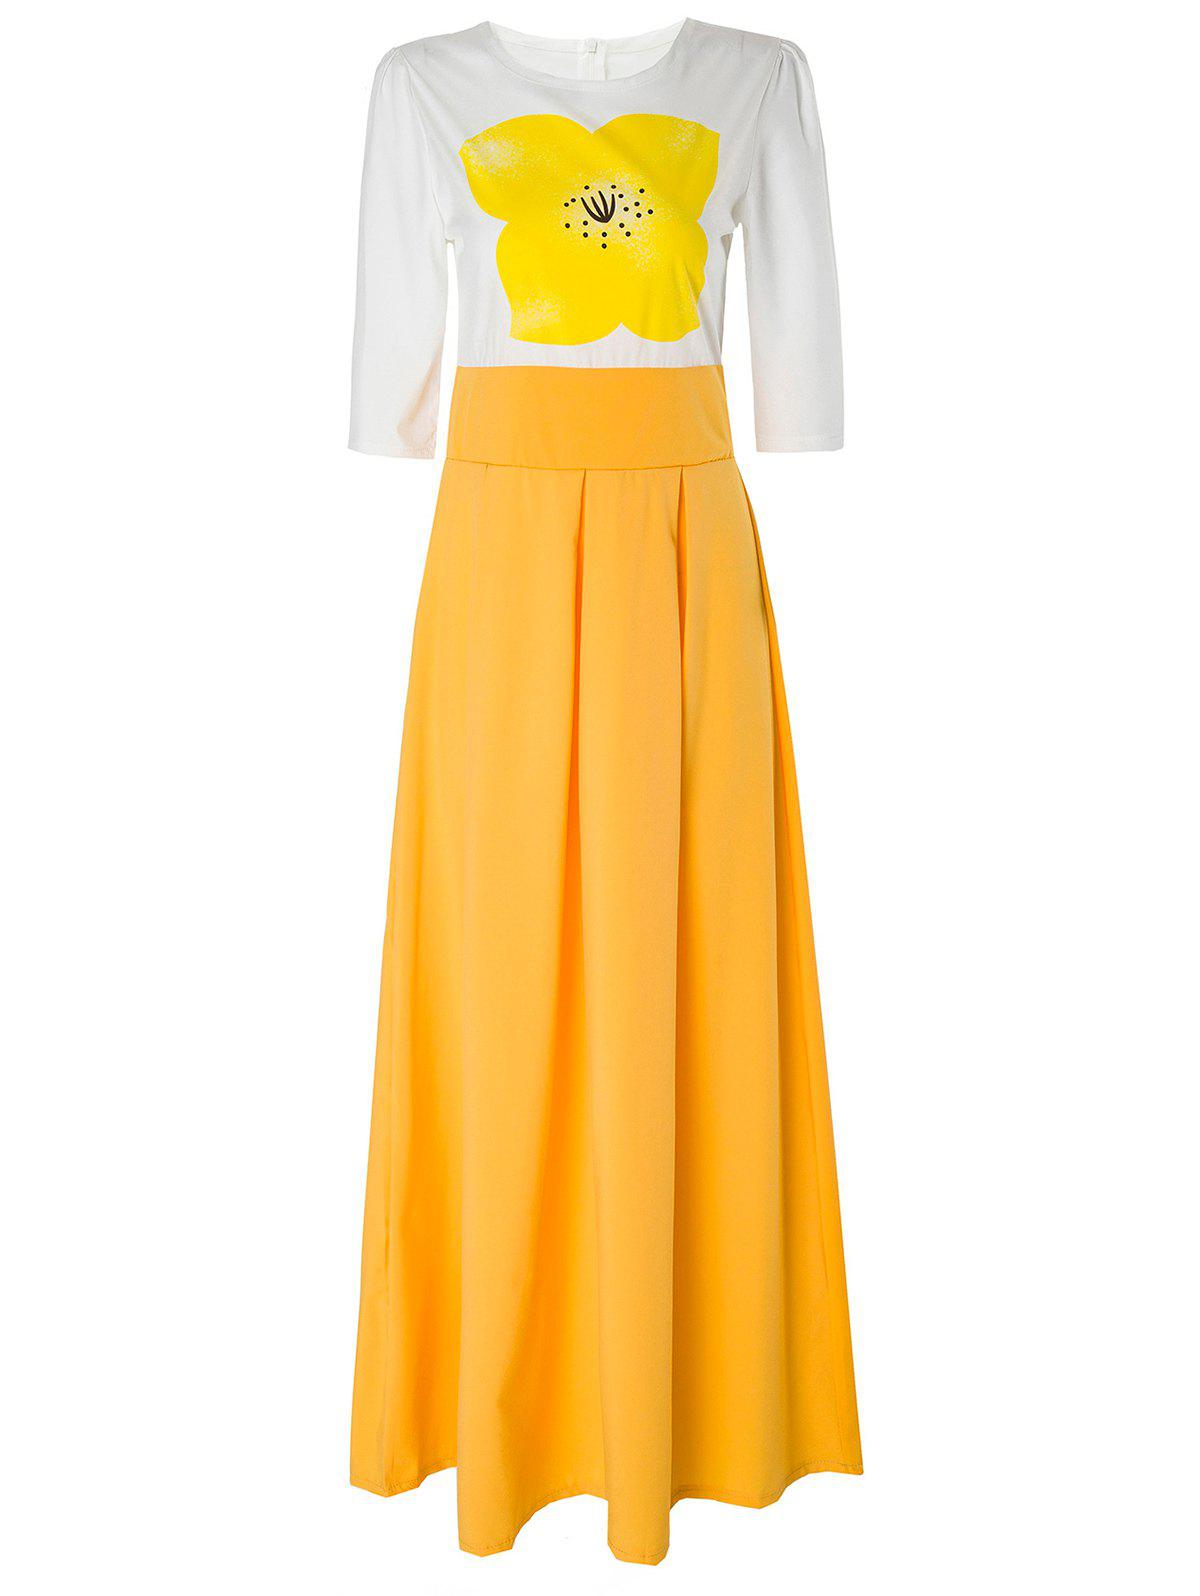 Shops Stylish Round Neck Short Sleeve Yellow Floral Women's Maxi Dress